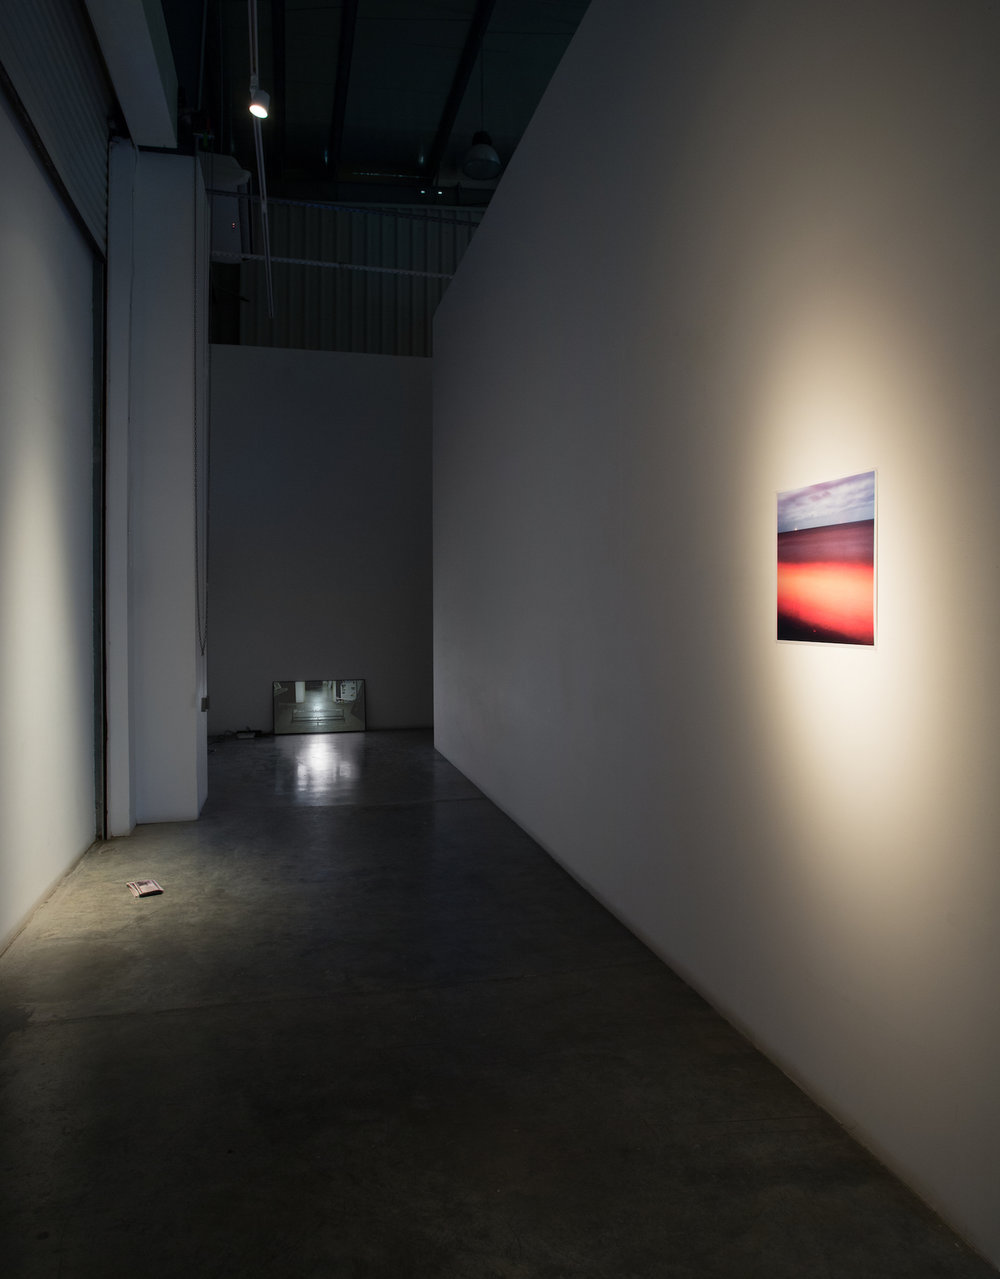 Installation view, L - R   LEFT: Lantian Xie, Dubayygeists - Hong Kong Restaurant takeaway menus (commissioned for the exhibition) 2015   CENTER: Michael John Whelan Now the shadows I measure 2015 HD video, silent 00:01:46 loop Ed of 3 + 2 AP  RIGHT: Michael John Whelan That we were to wait 2015 c-print 45.5 x 45.5 cm Ed of 5 + 2 AP